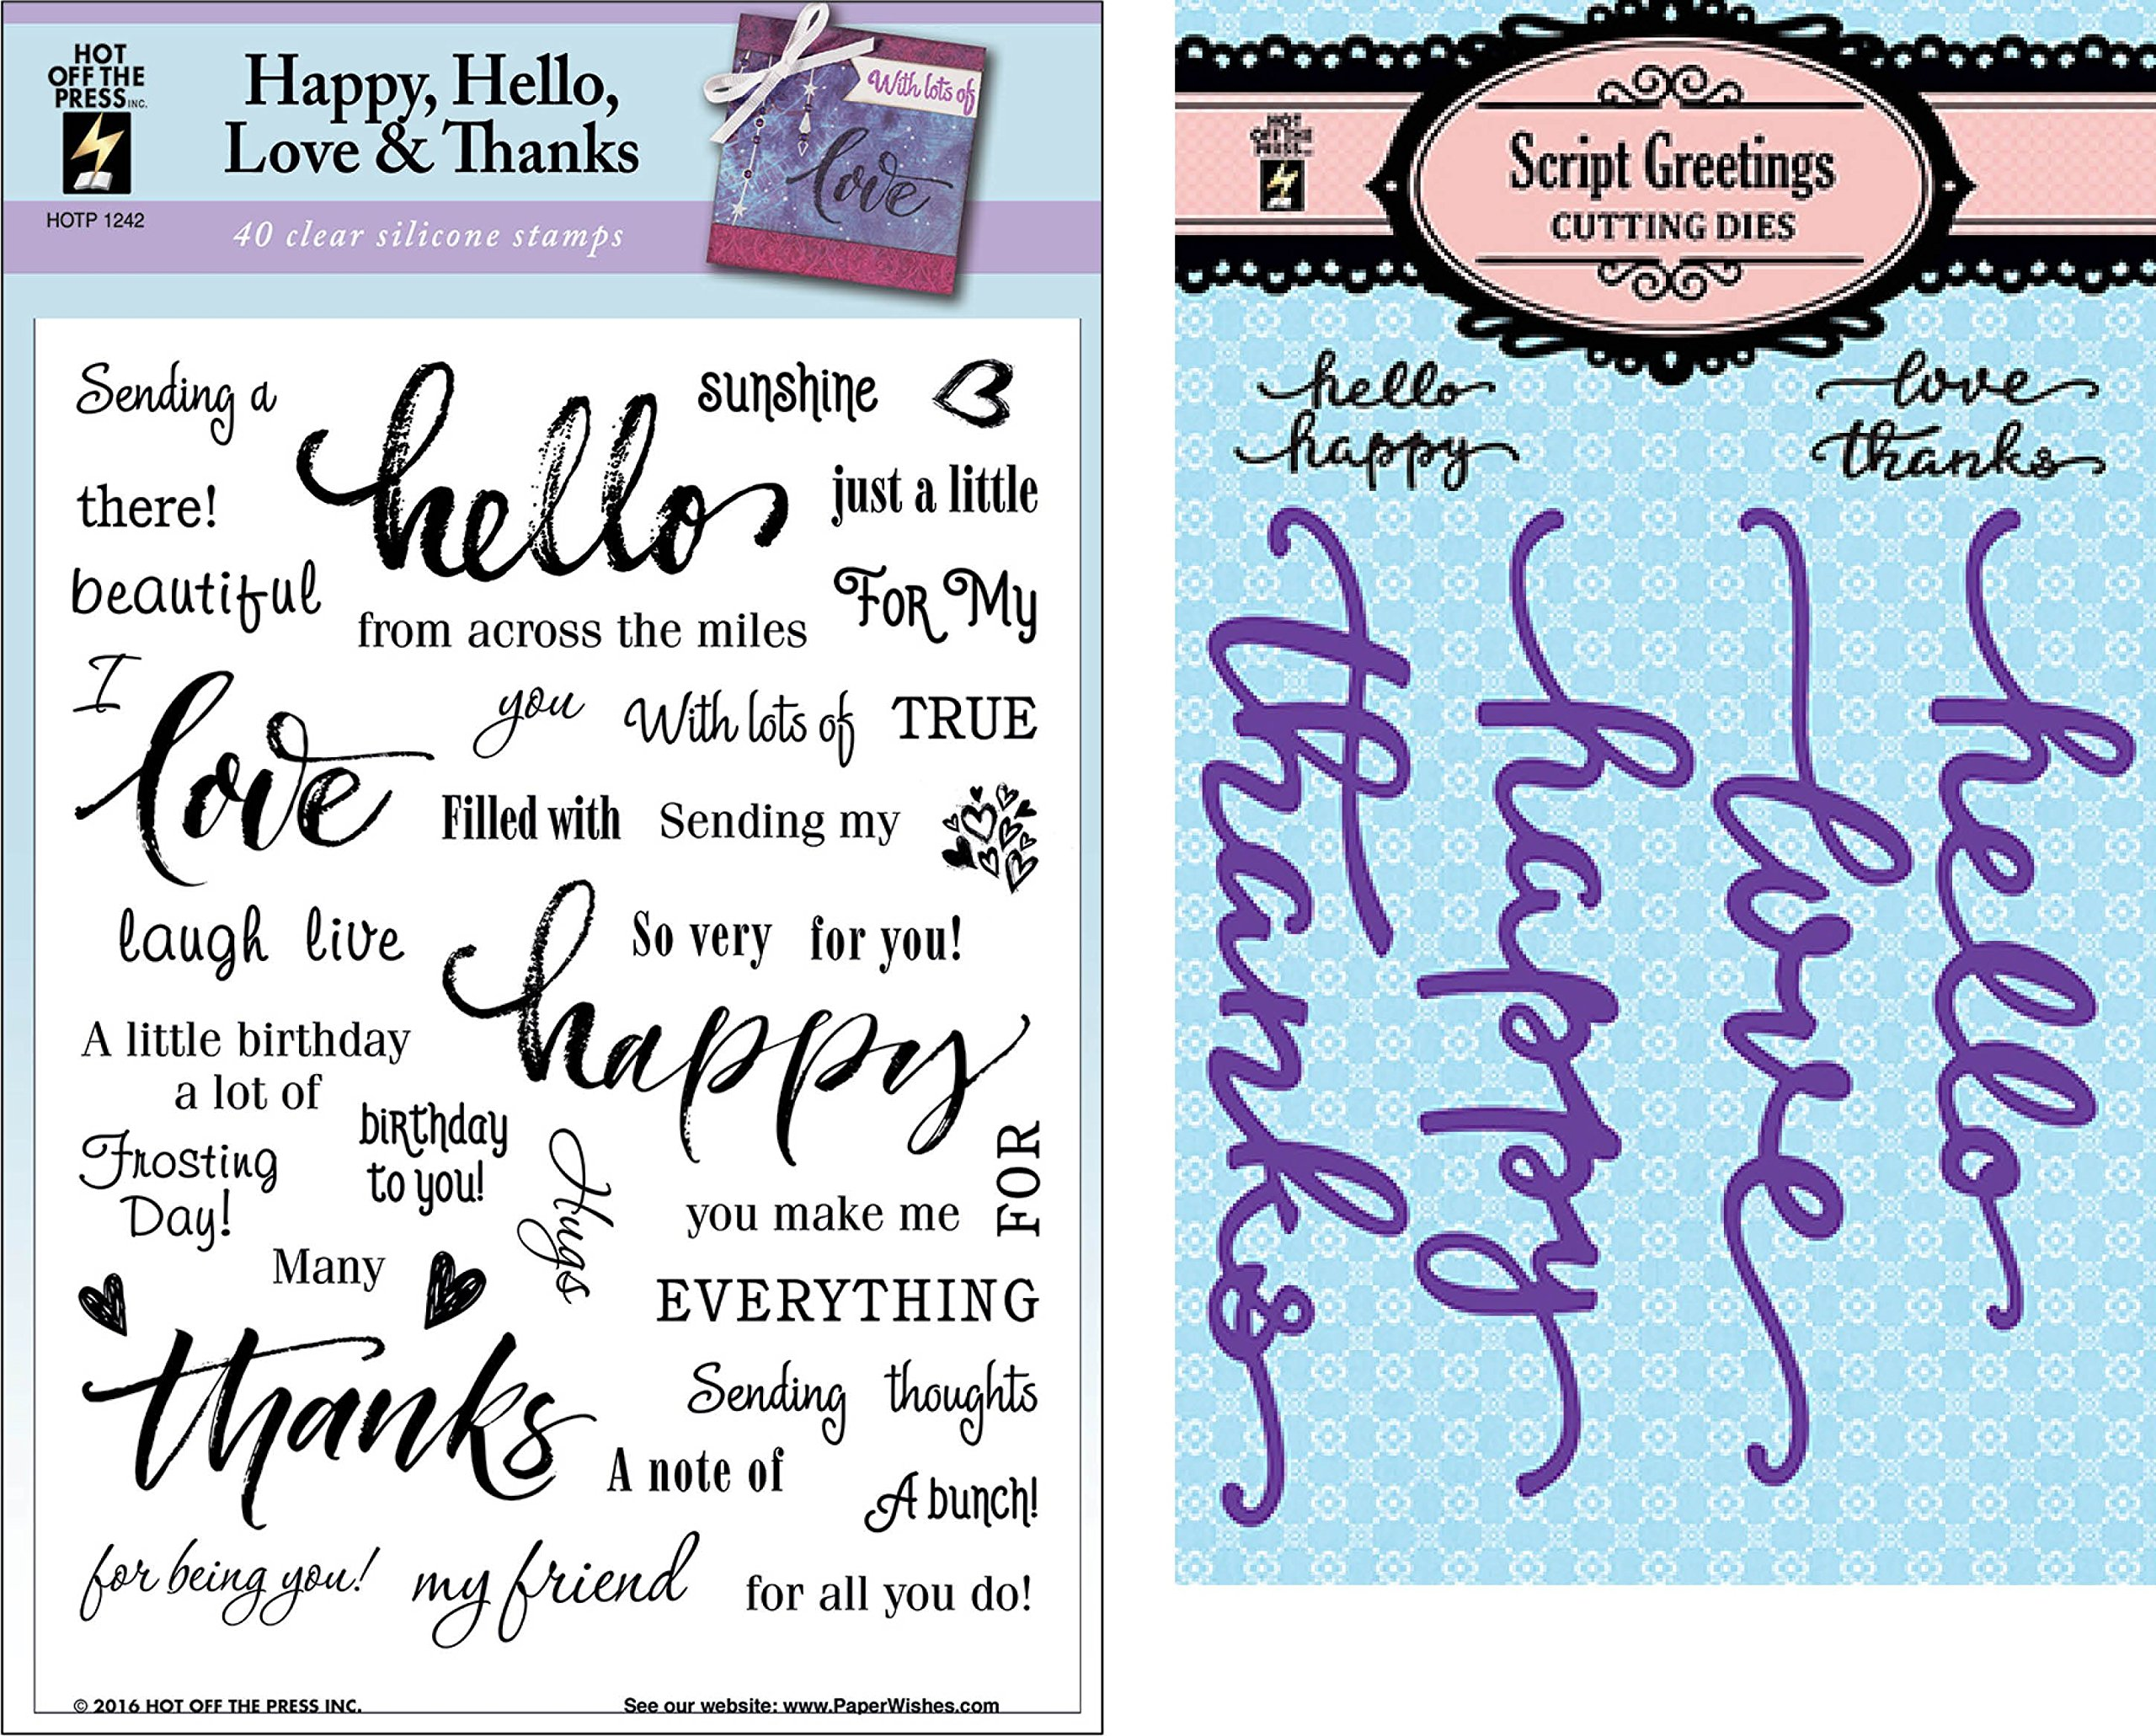 """Coordinating Script Greetings Cutting Die Set and Happy, Hello, Love, Thanks Clear Silicone Stamp Set by Hot Off The Press 